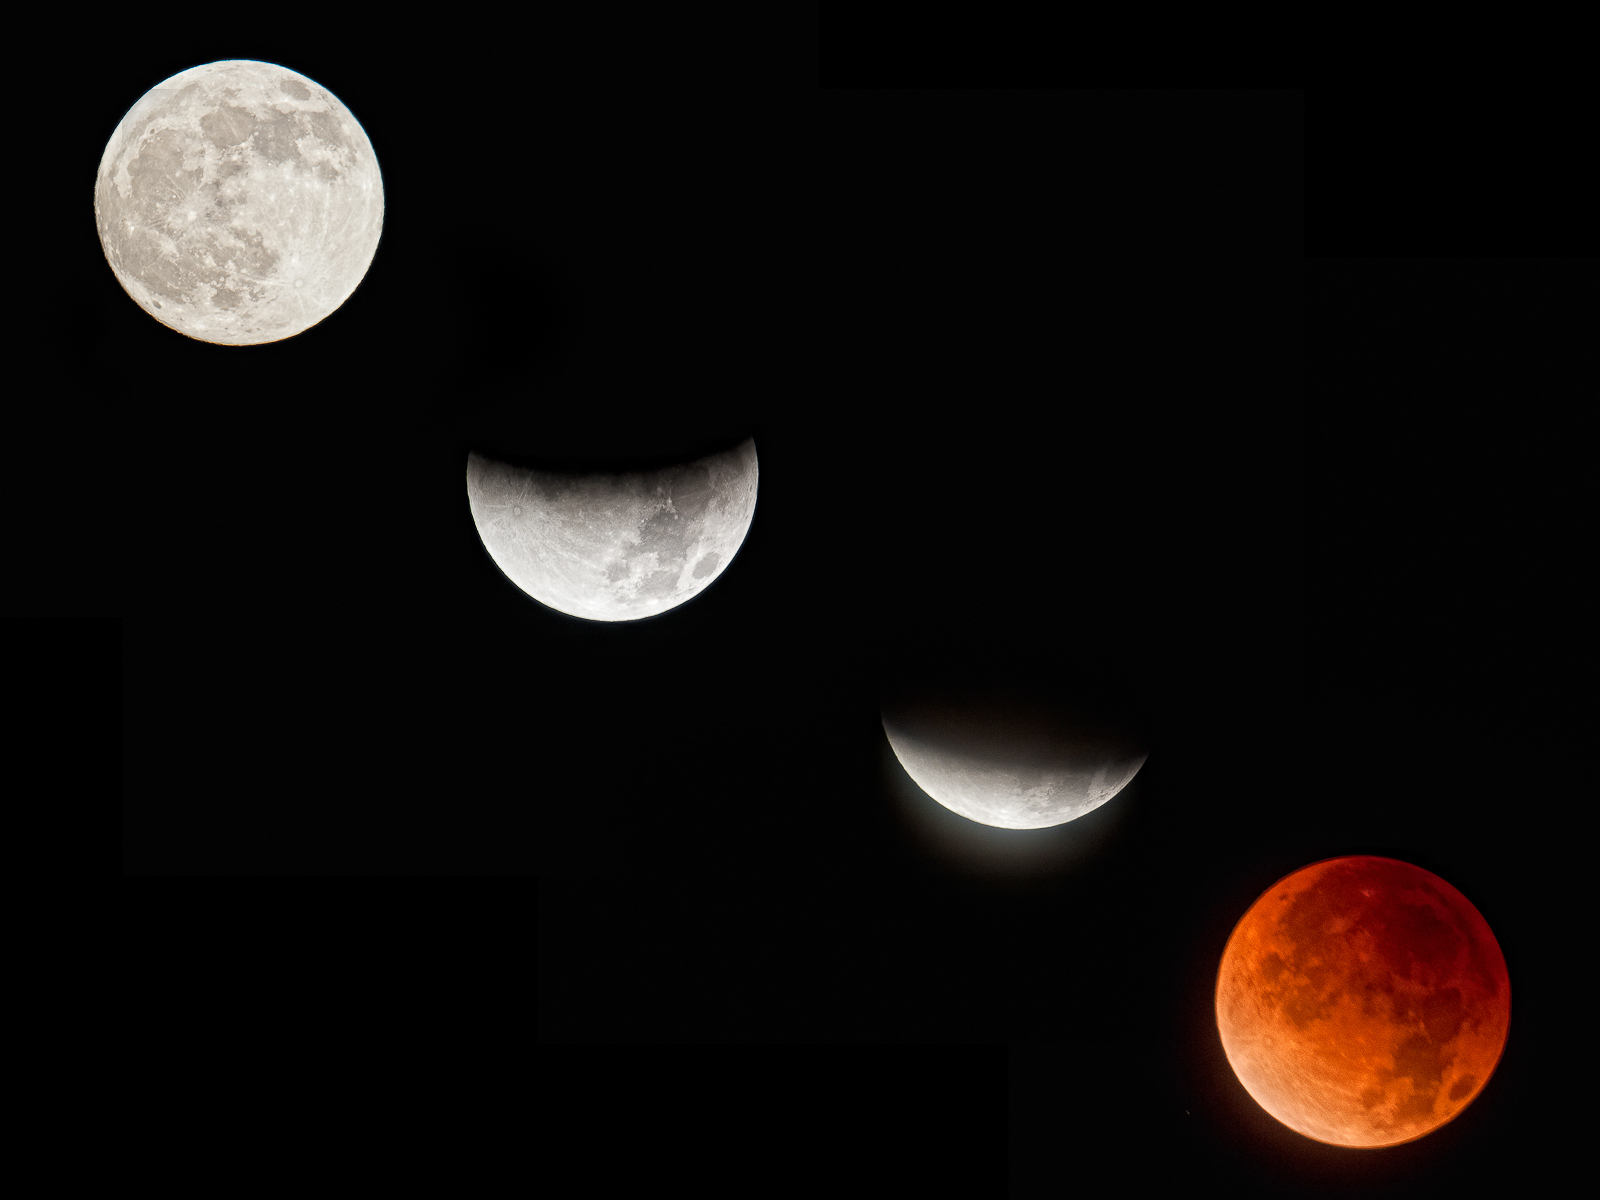 Lunar eclipse from full moon to total eclipse